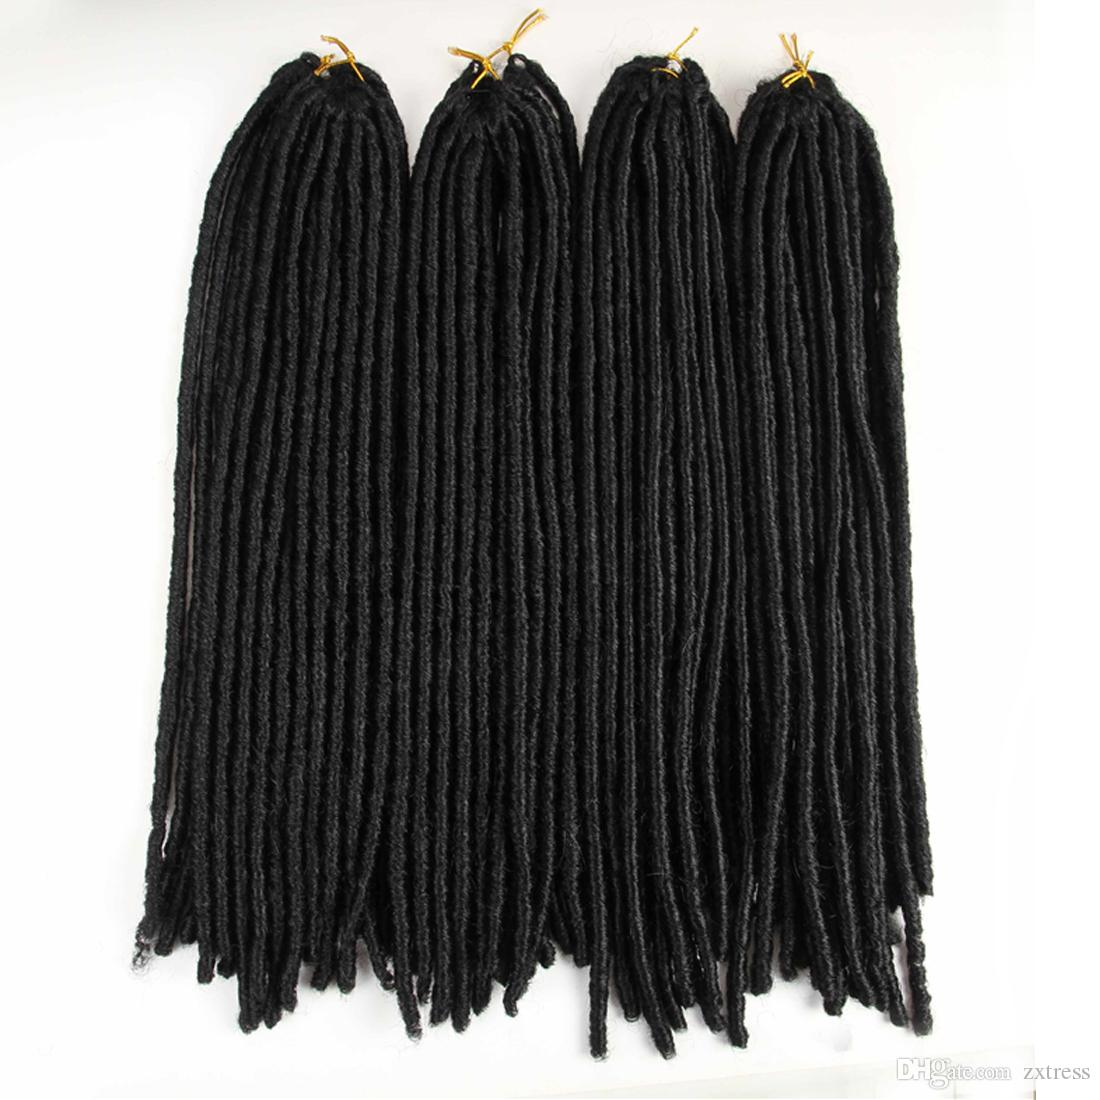 20inch 5packs Soft Dreadlocks Crochet Braids Kanekalon Jumbo Dread Hairstyle Ombre Synthetic Braiding Hair Extensions Faux Locs